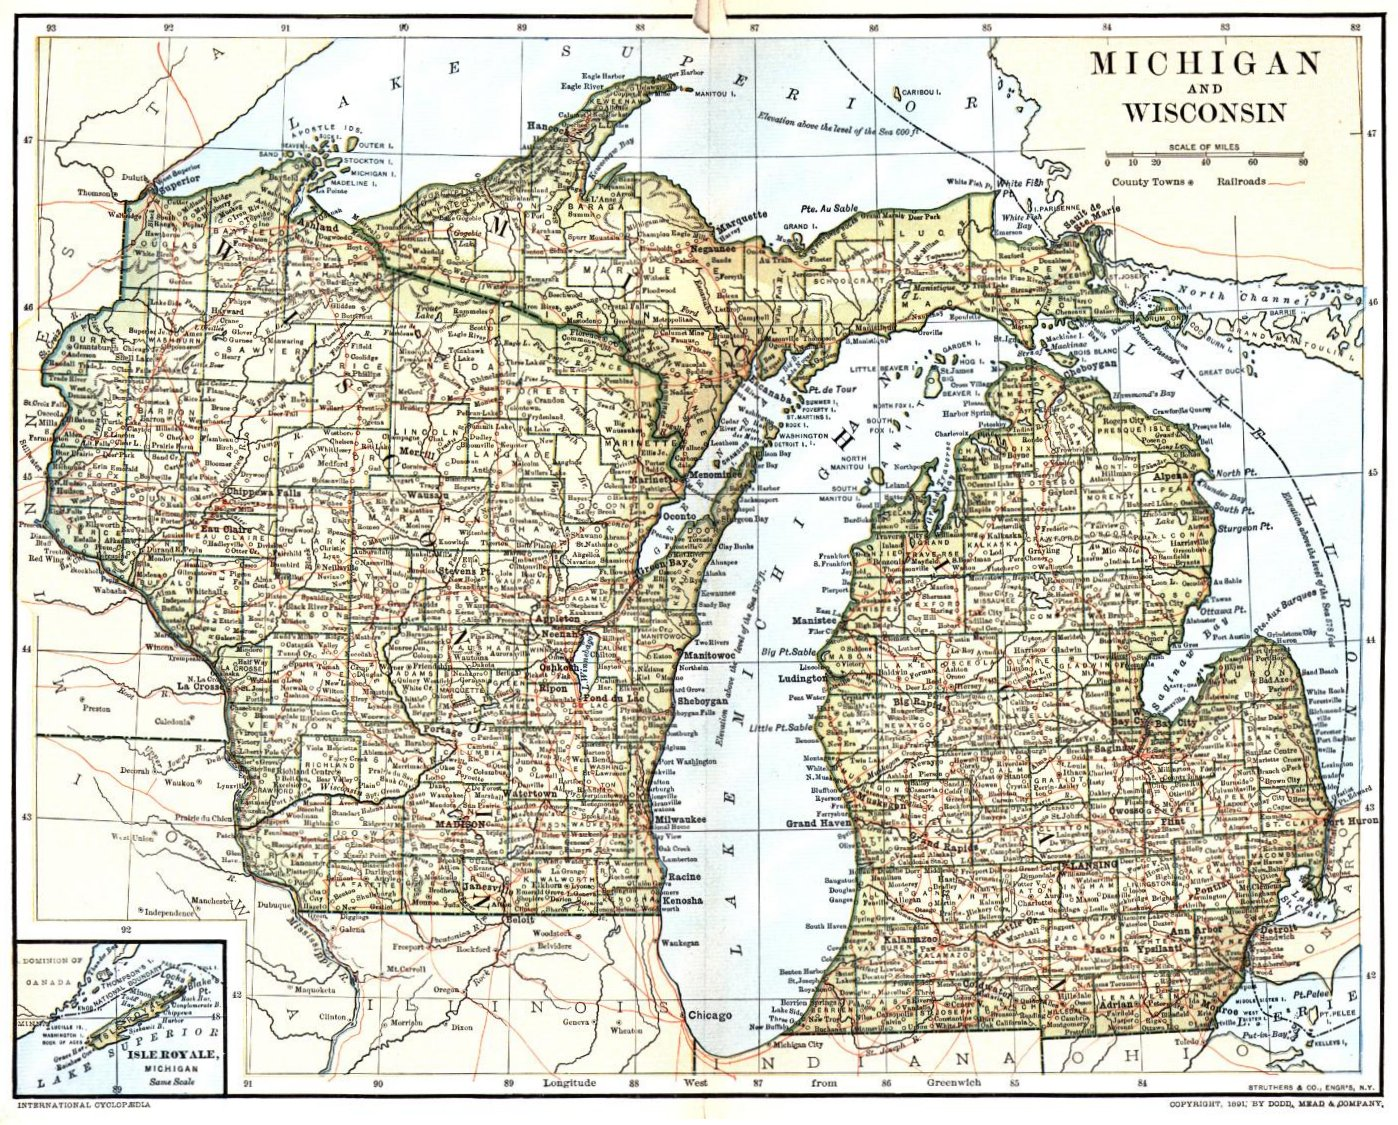 Wisconsin Maps. Wisconsin Digital Map Library. Table of Contents ...